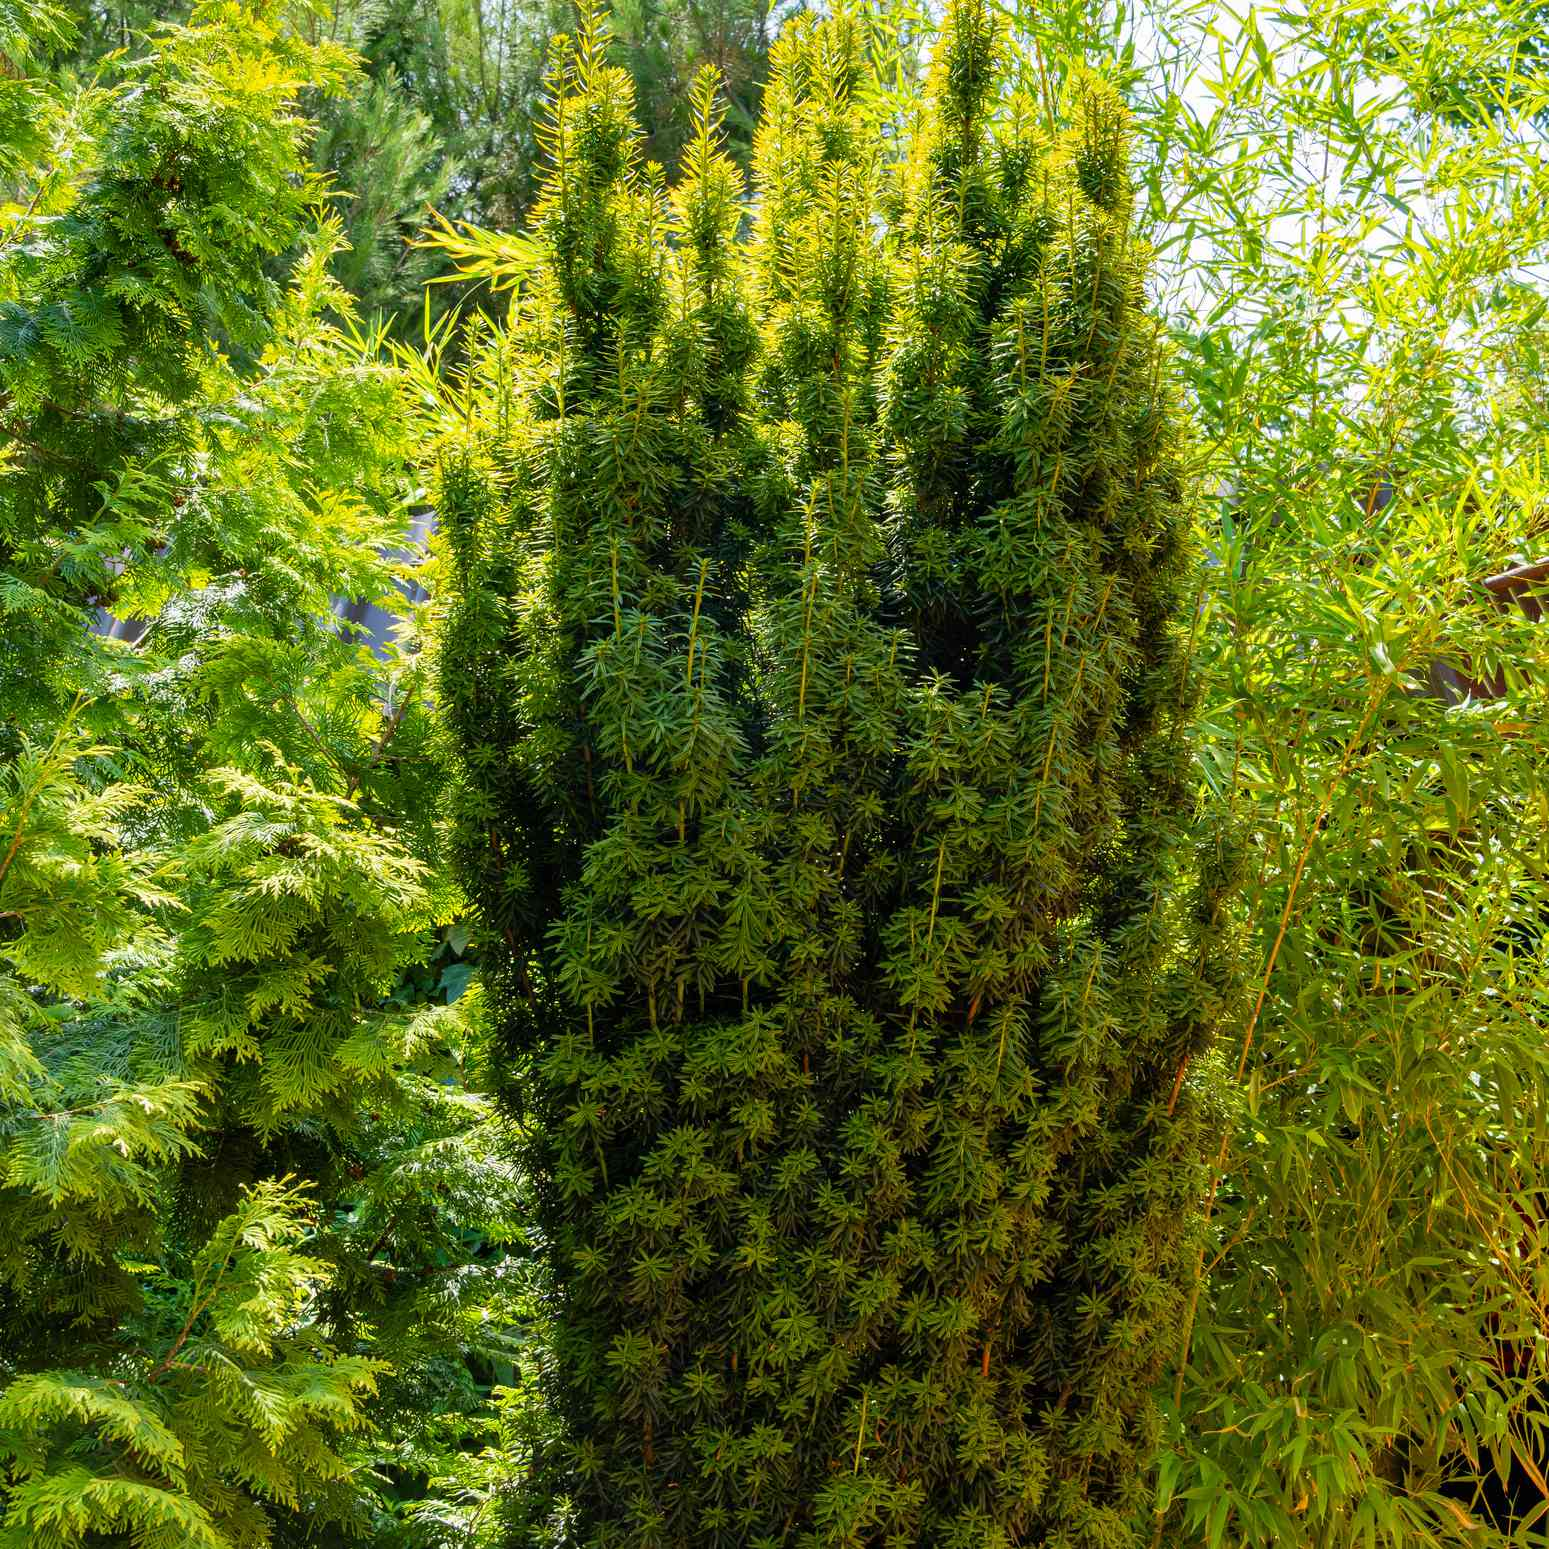 Tall yew bush Taxus baccata Fastigiata Aurea (English yew, European yew) on a blurred background of green evergreens. Selective focus. Evergreen landscaped garden. Nature concept for design.